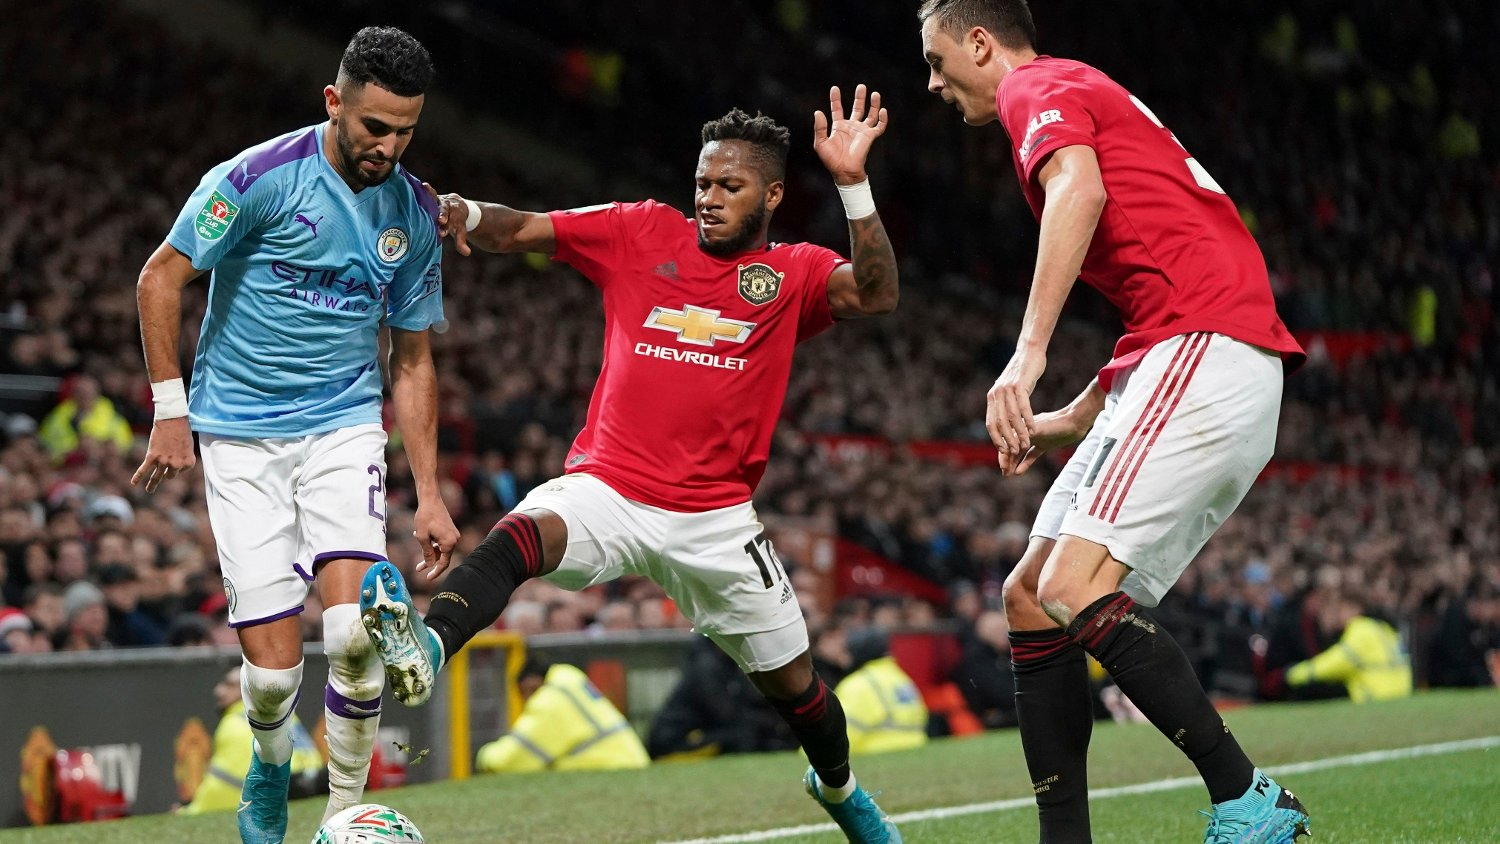 Manchester United's Fred, centre tackles Manchester City's Riyad Mahrez, left, for the ball during the English League Cup semifinal first leg soccer match between Manchester United and Manchester City and at Old Trafford, Manchester, England, Tuesday, Jan. 7, 2020.